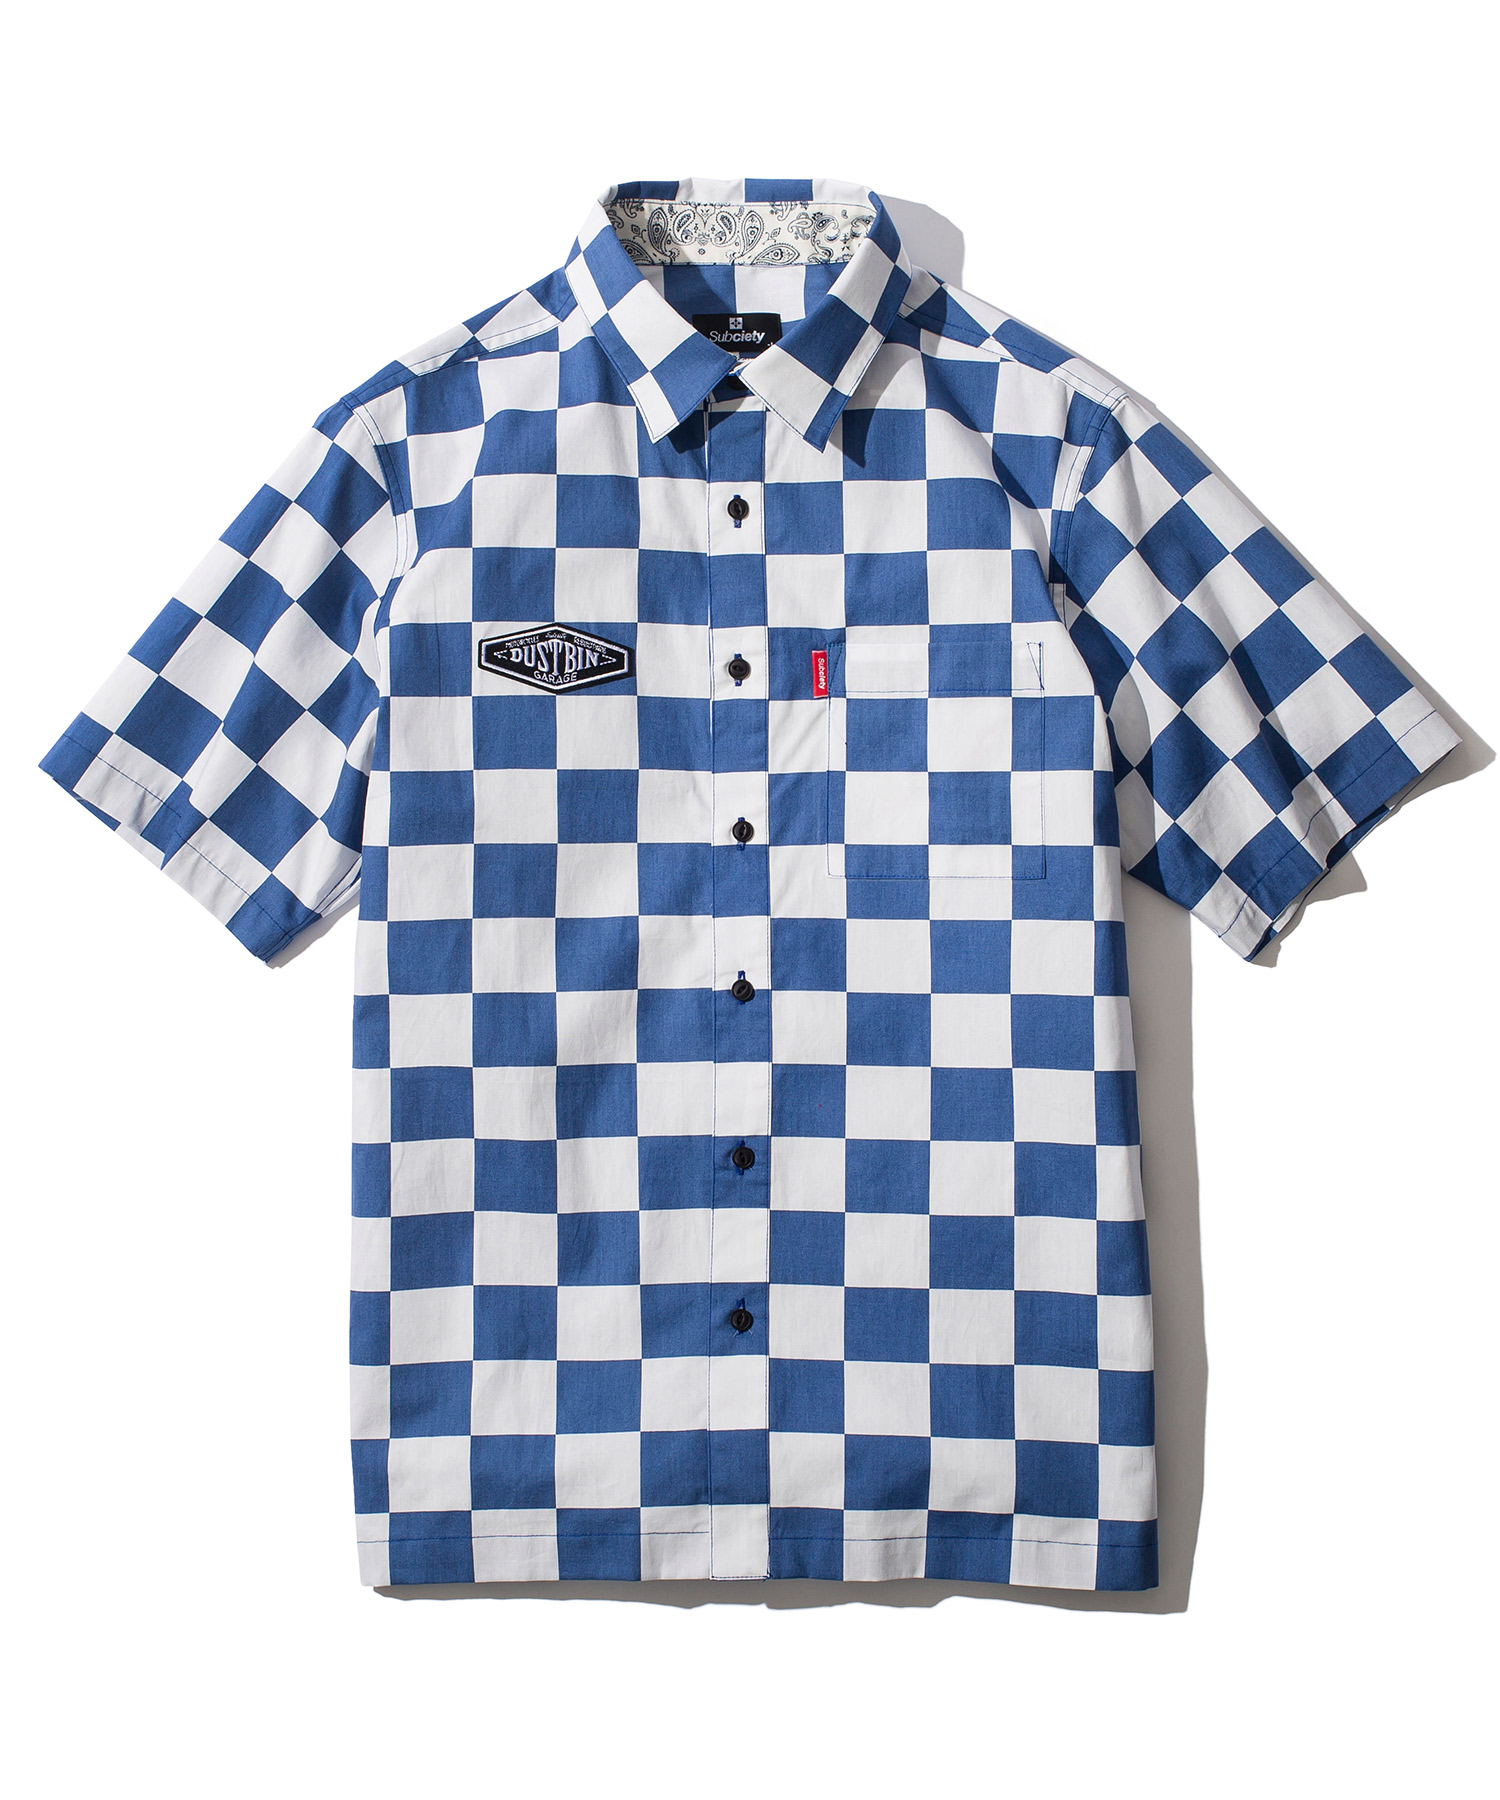 SUBCIETY サブサエティ CHECKER MESH SHIRT